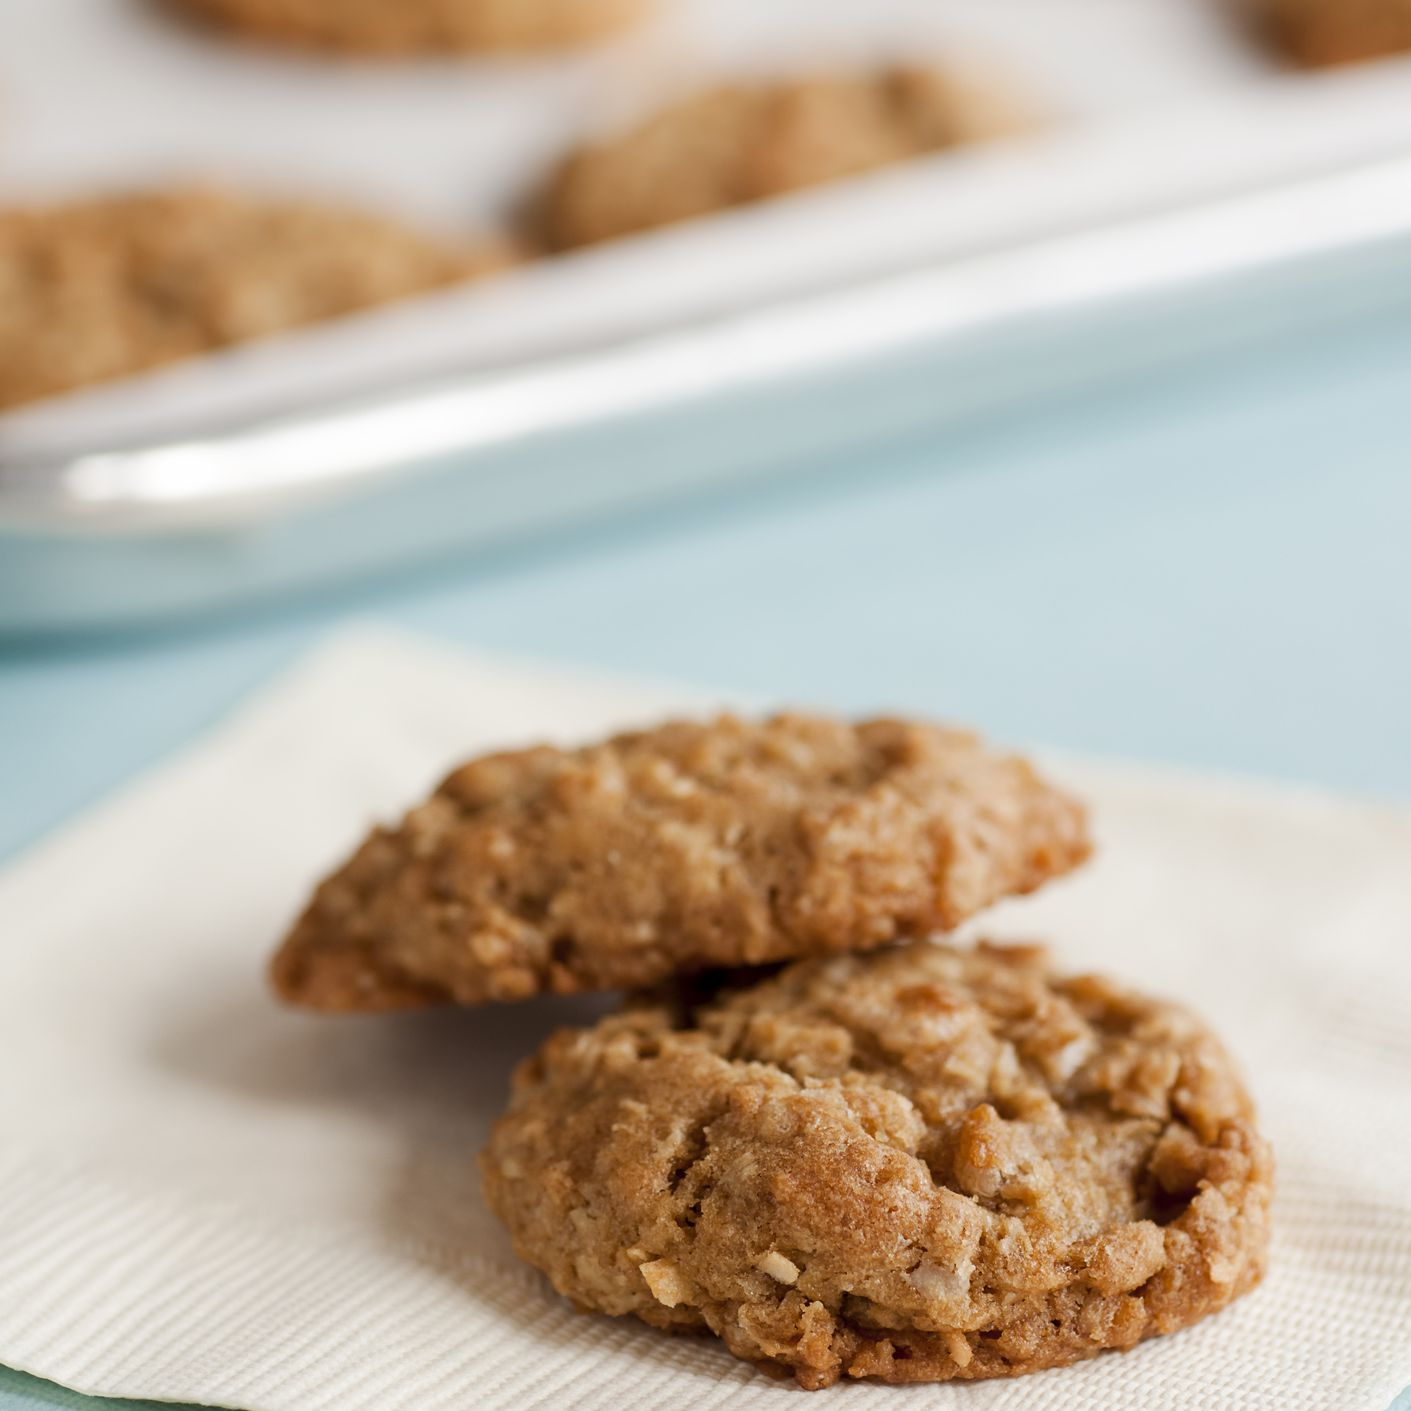 Gluten-free toasted coconut oatmeal cookies on a napkin